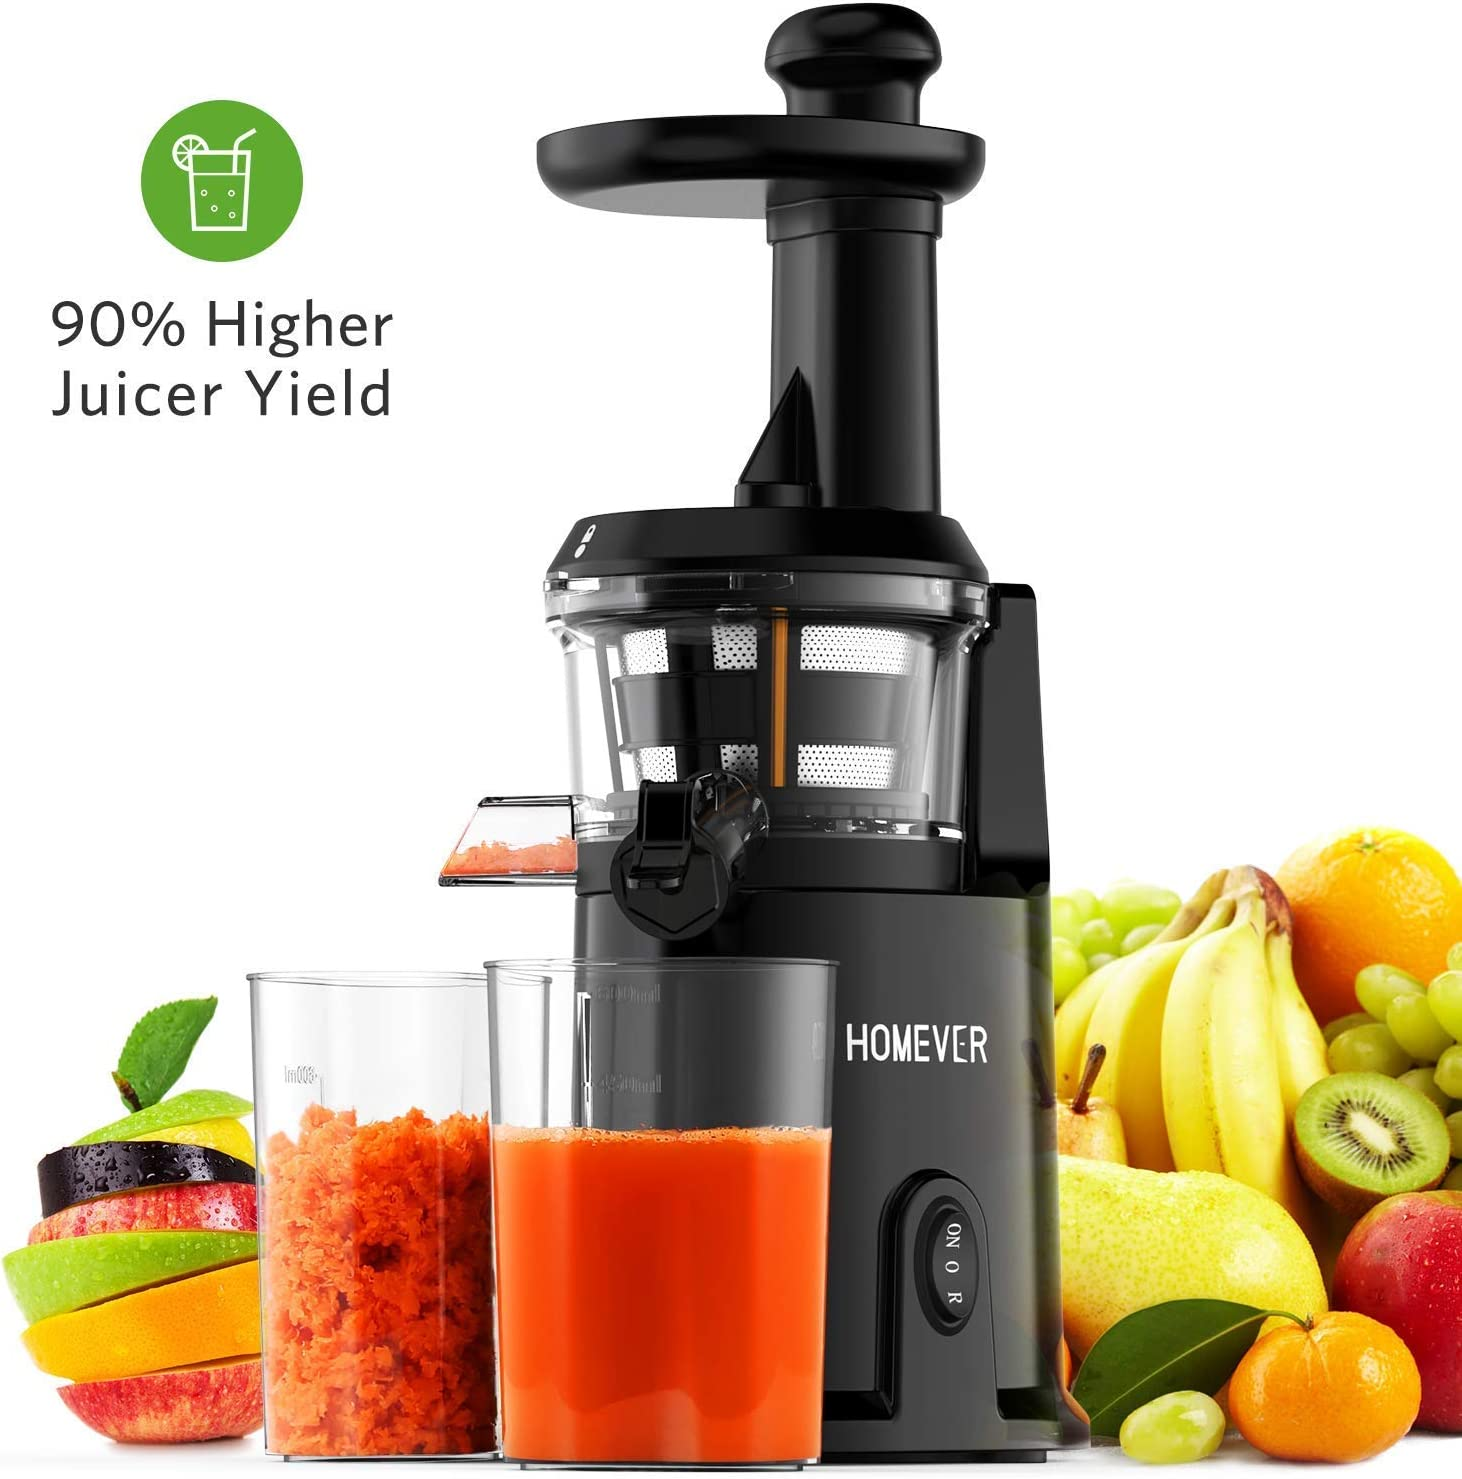 Juicer Machines, Homever Slow Masticating Juicer Extractor for Juicer Fresher, Cold Press Juicer for All Fruit and Vegetable, BPA Free, Quiet Motor